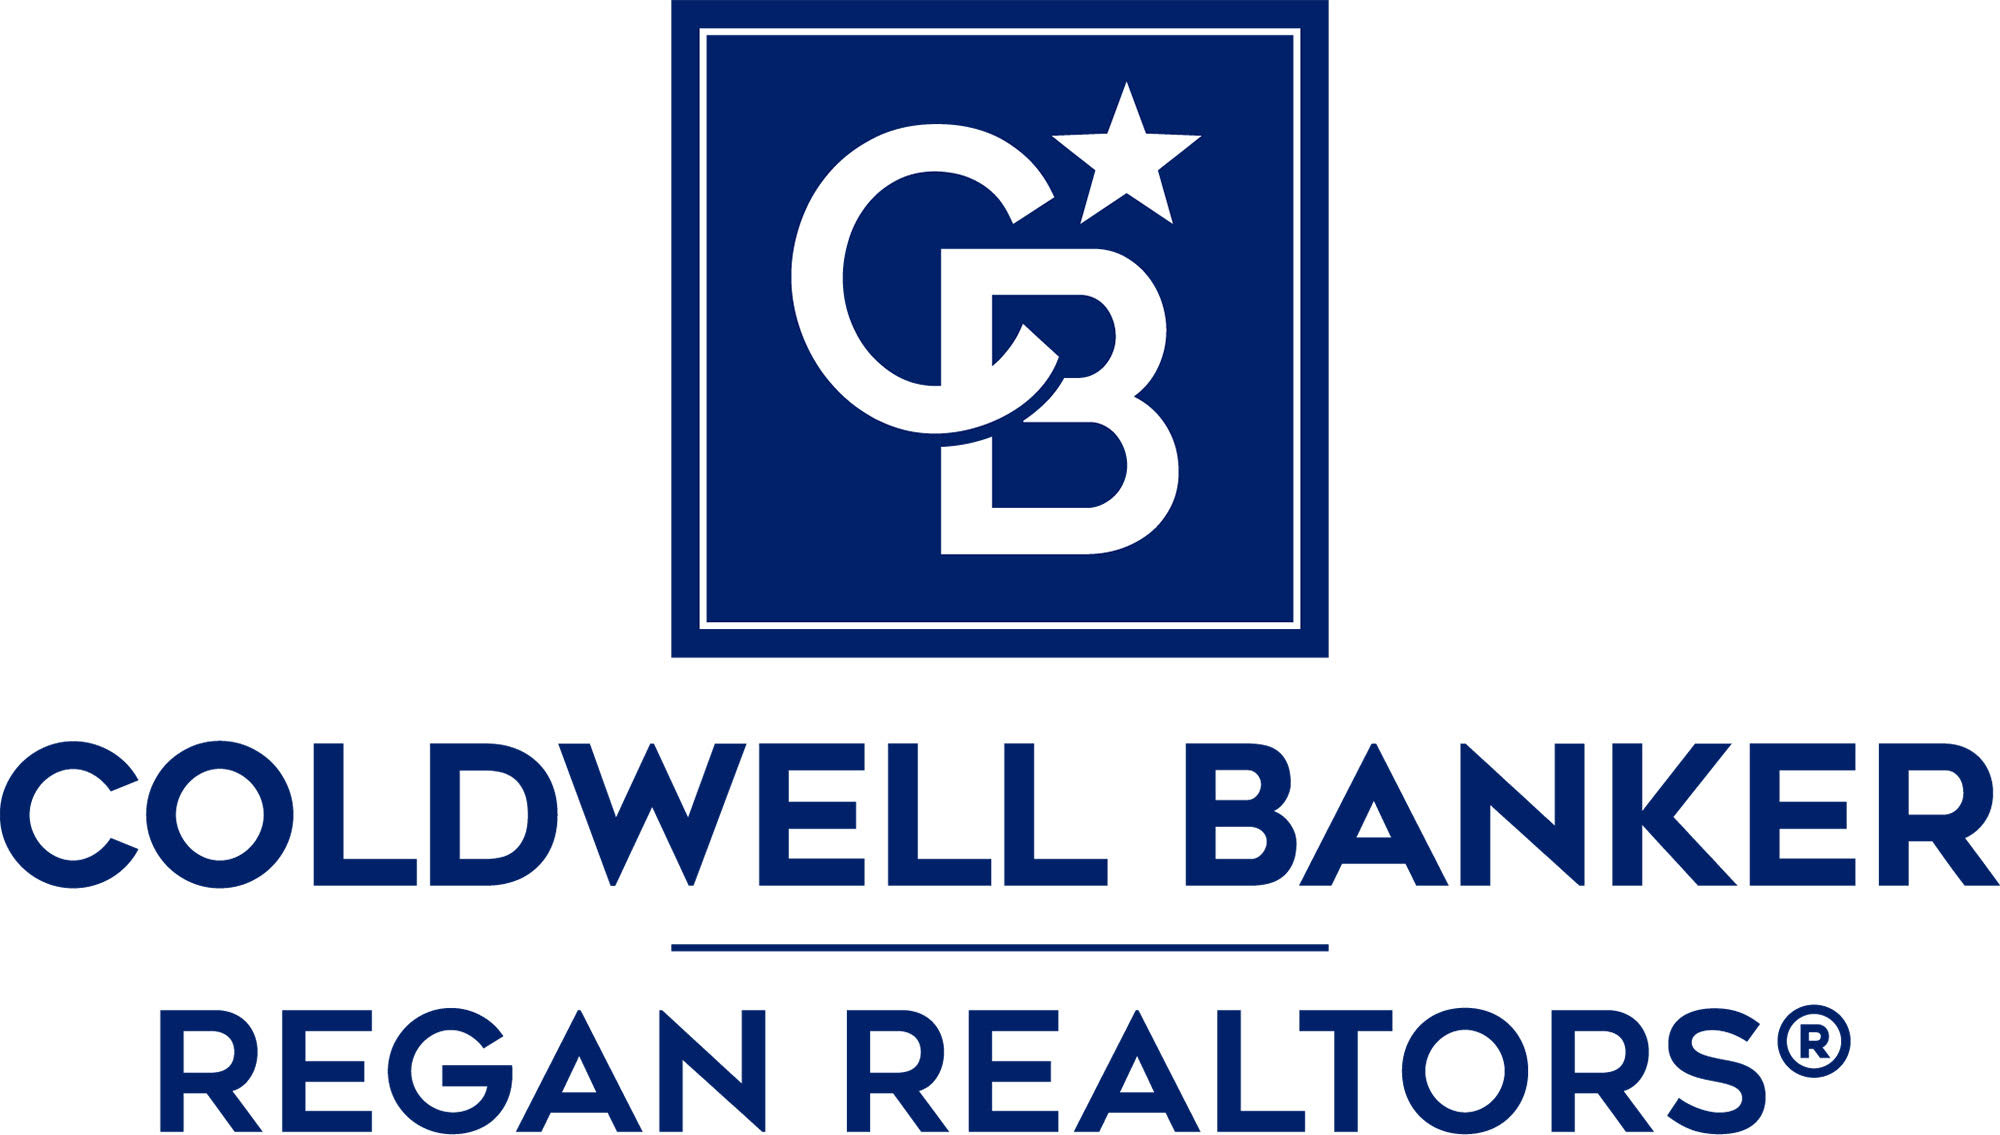 Chad Lee - Coldwell Banker Regan